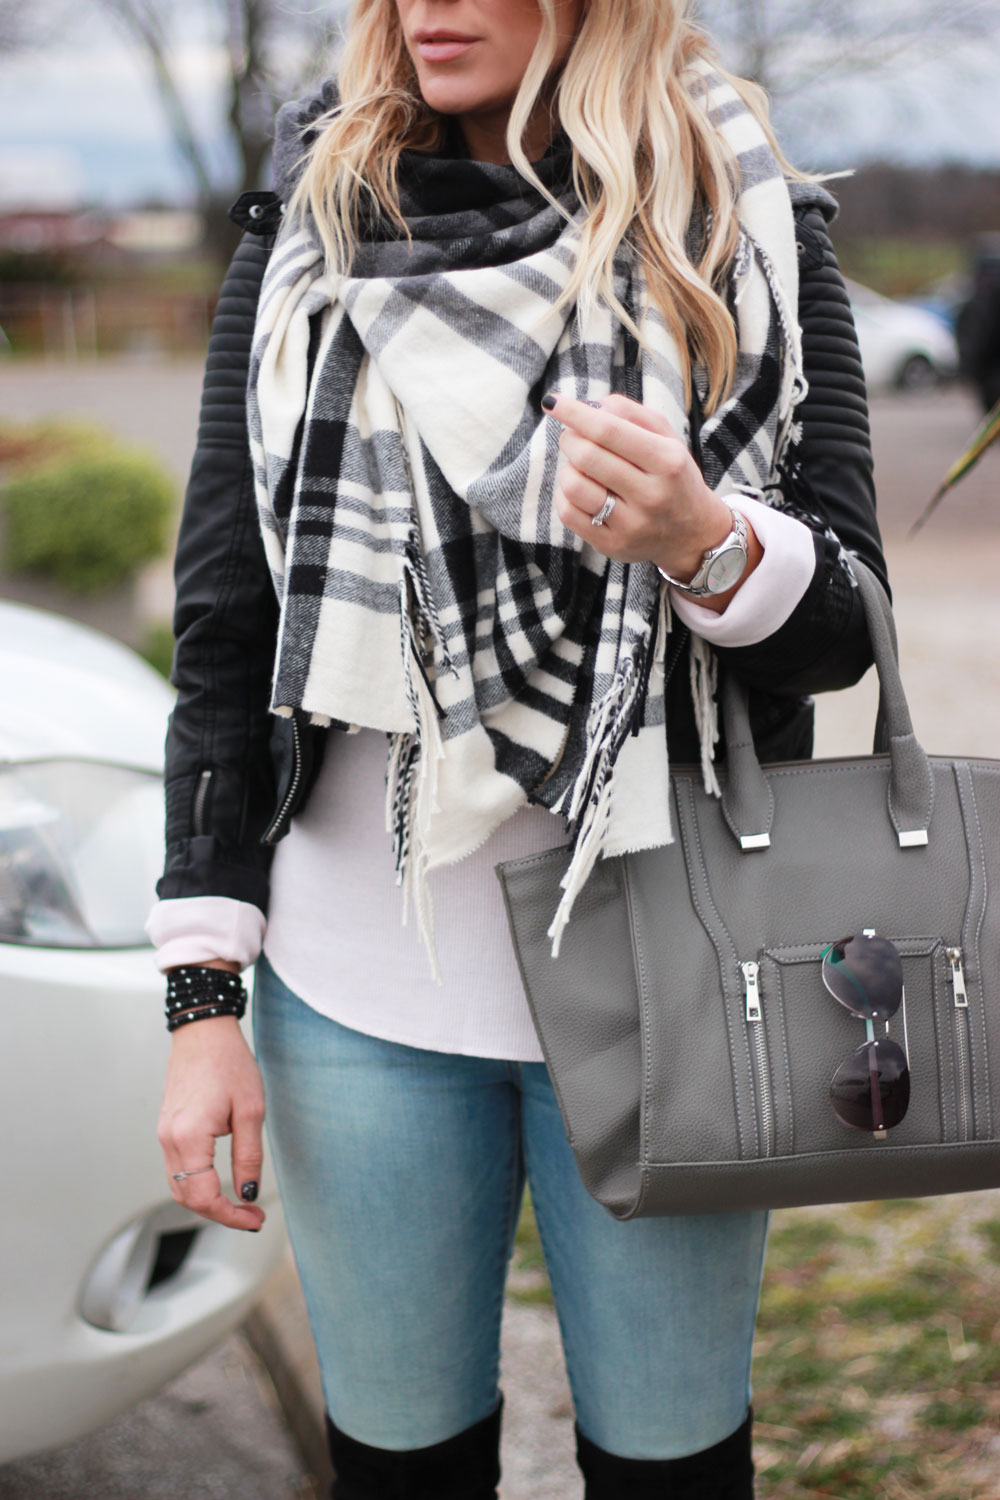 Leather jacket and blanket scarf